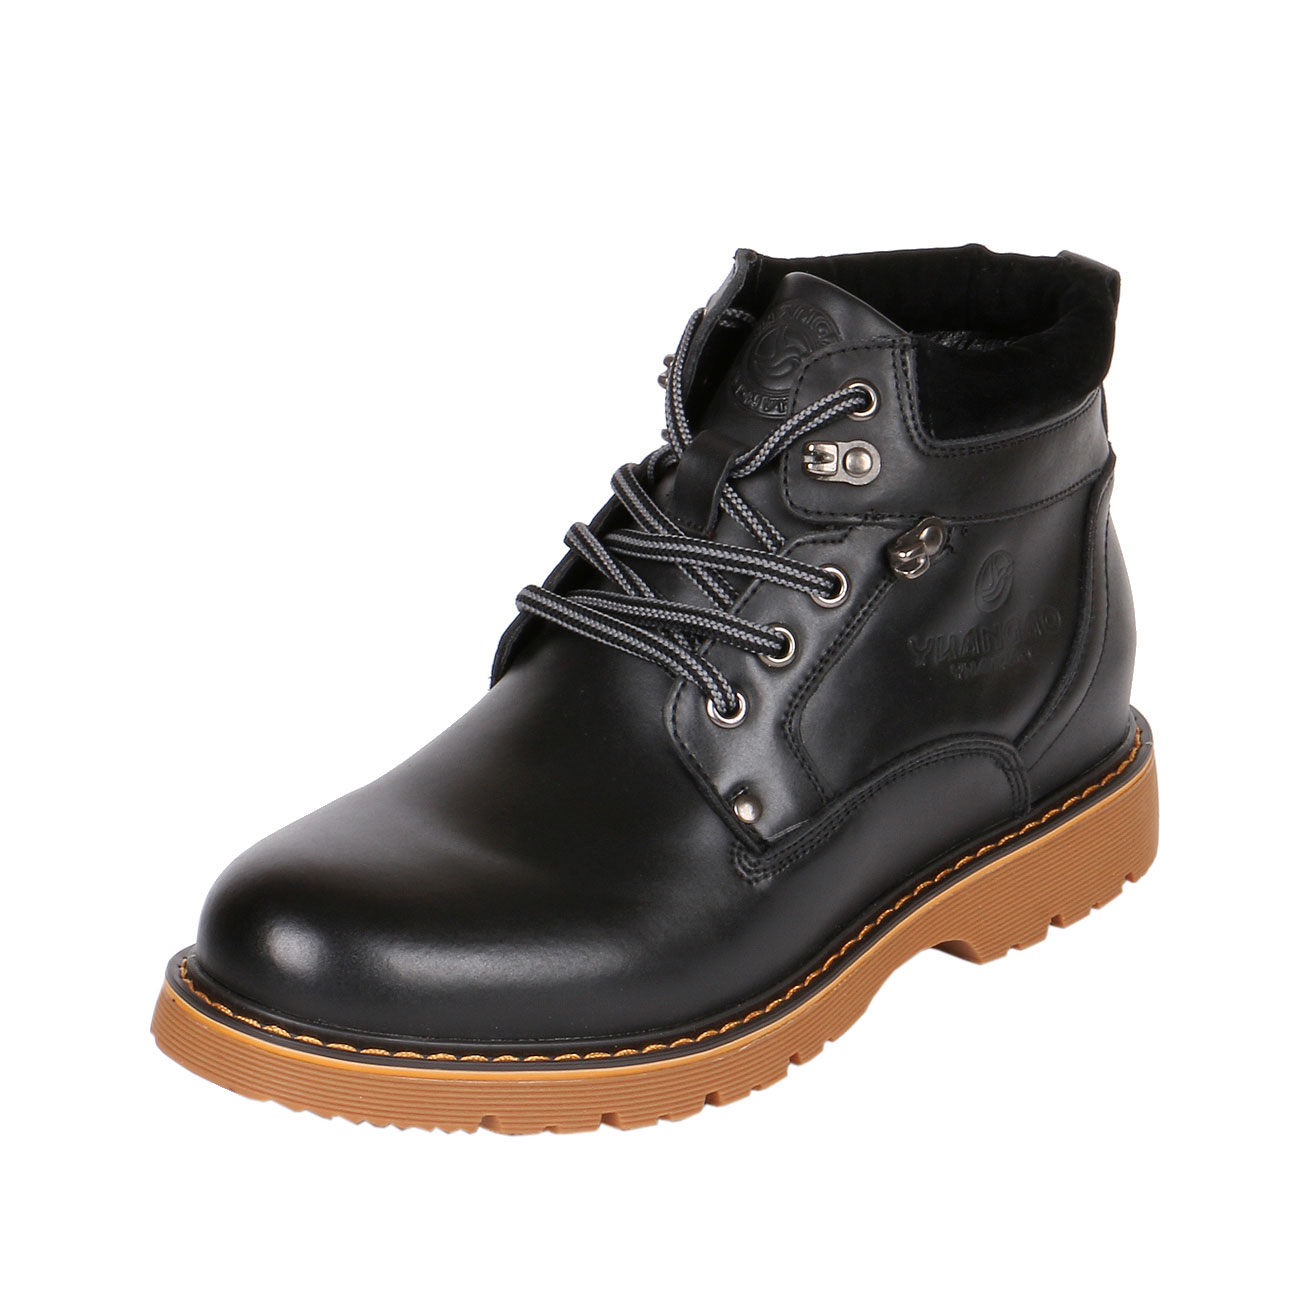 Men's Work Boots for Height-view1